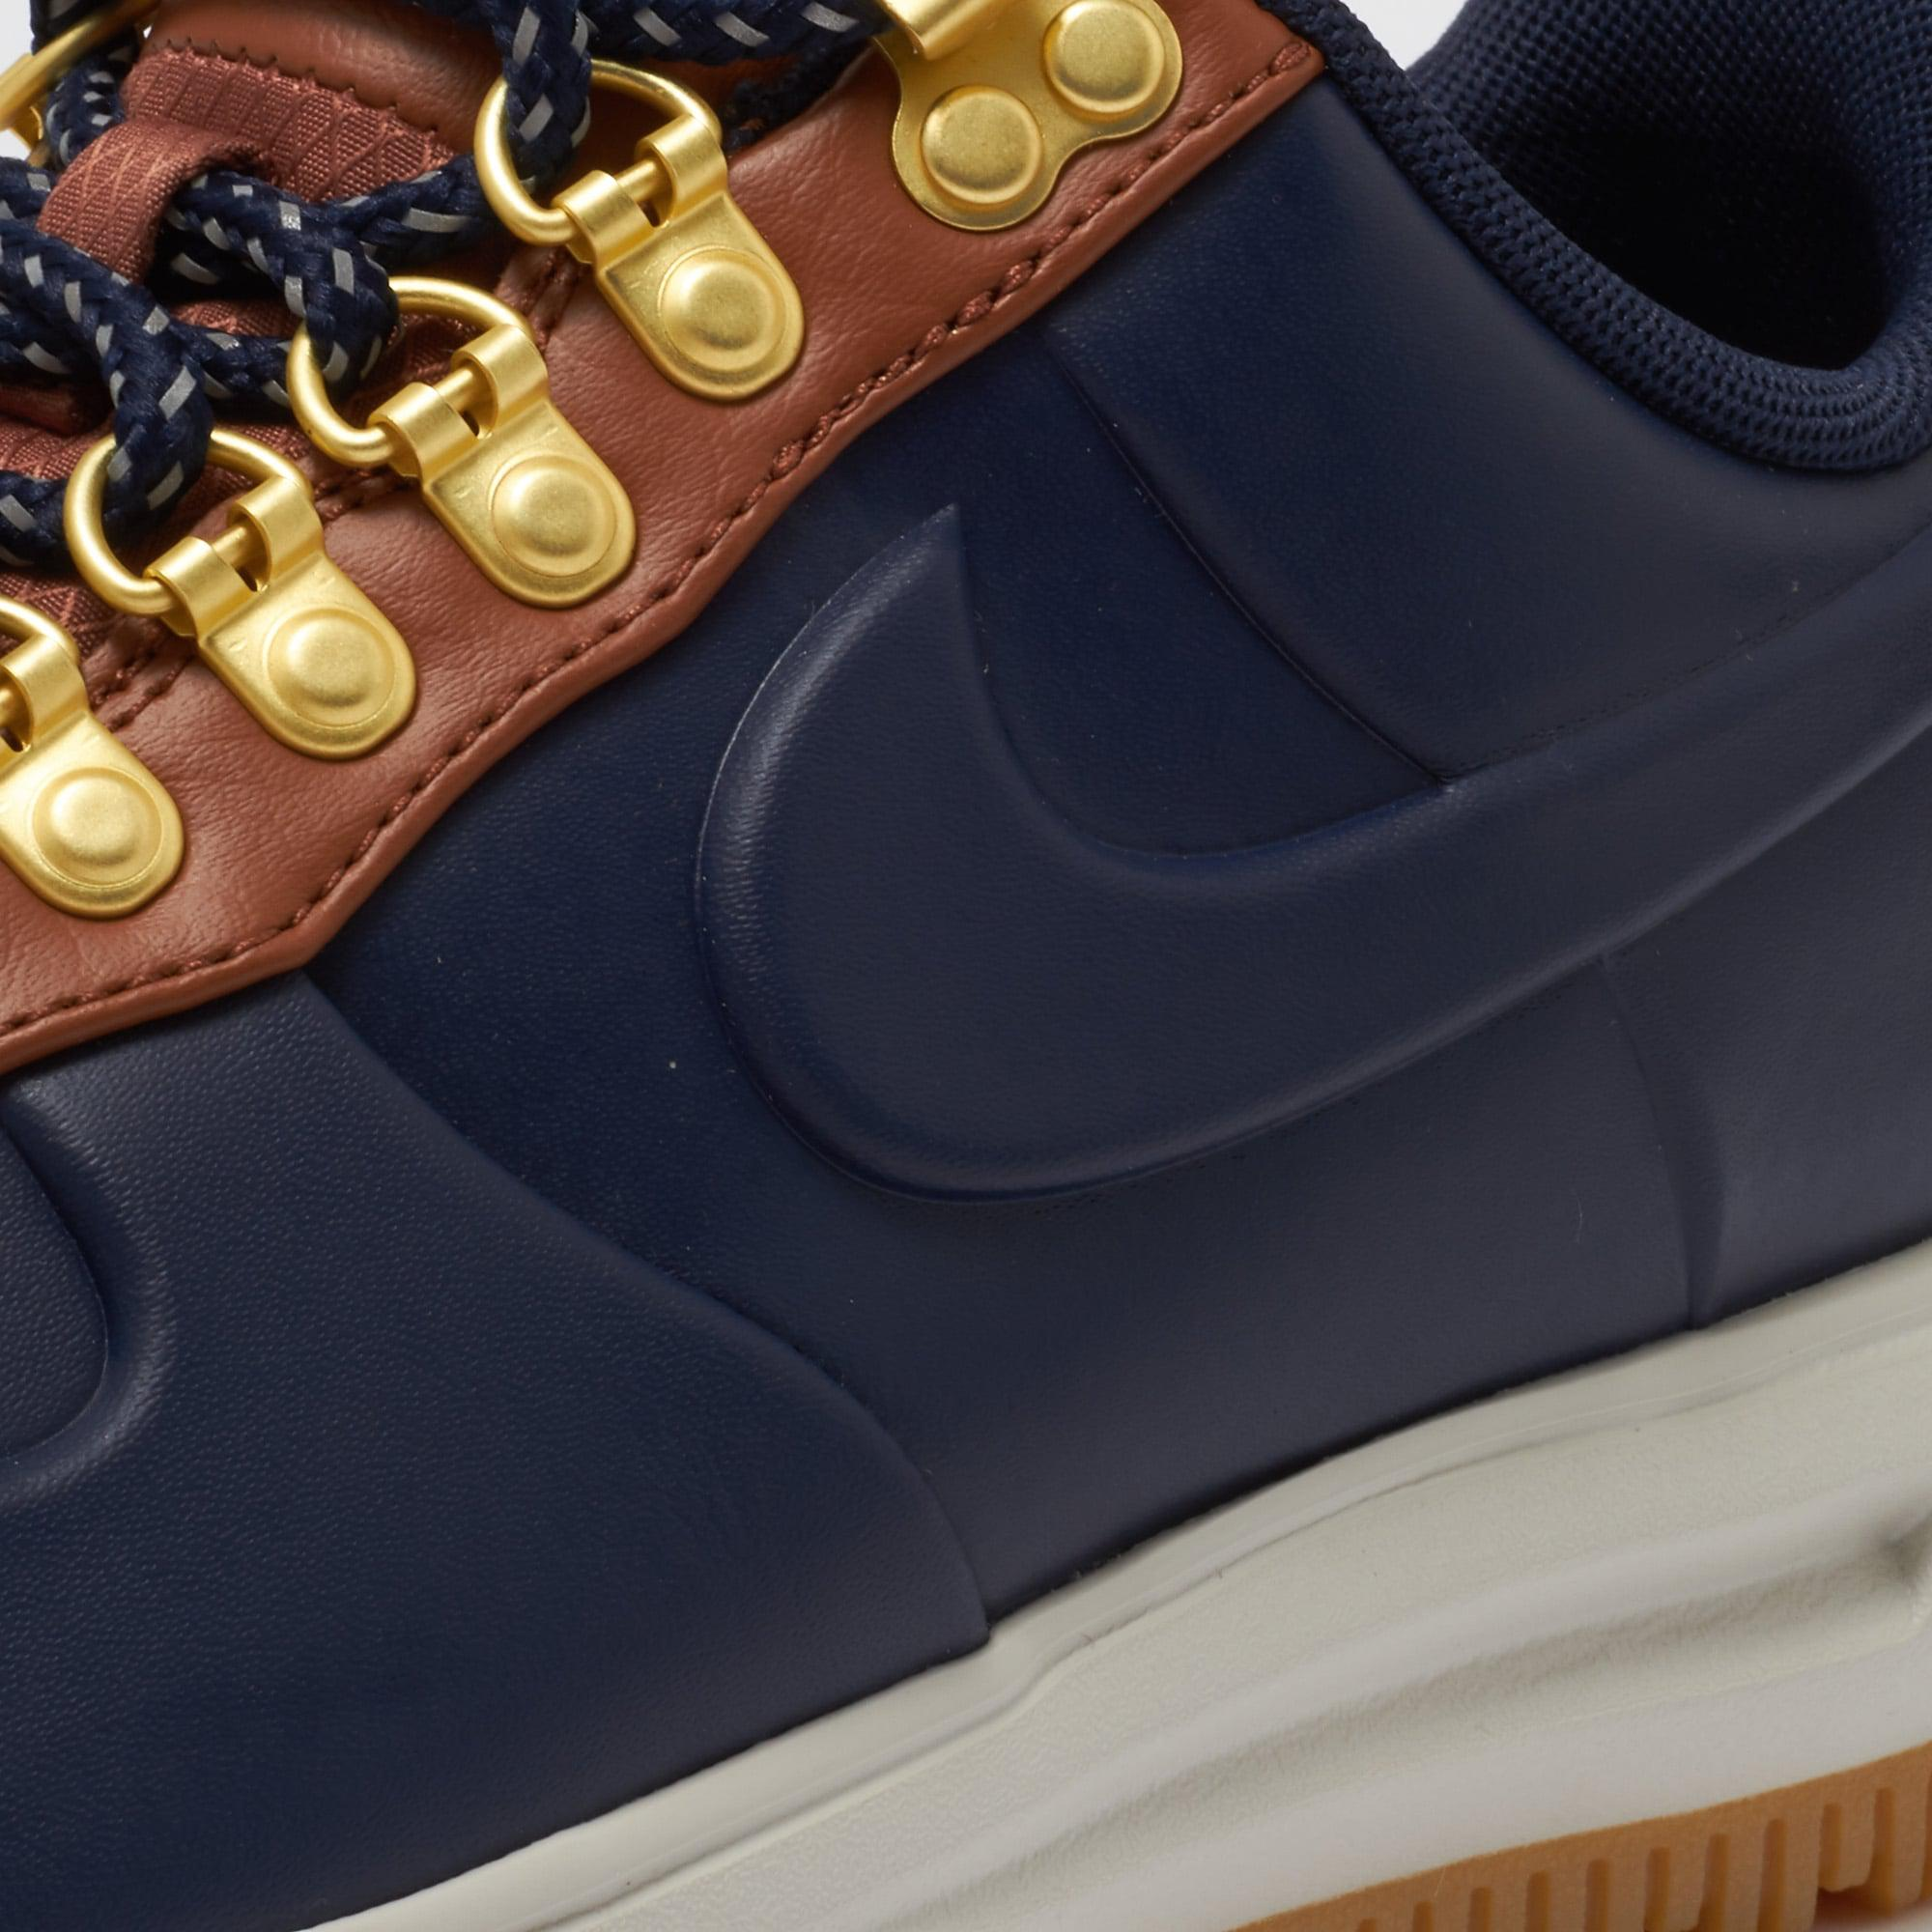 new york 7167e c85ff Nike Lunar Force 1 Duckboot Low - Obsidian  Saddle Brown in